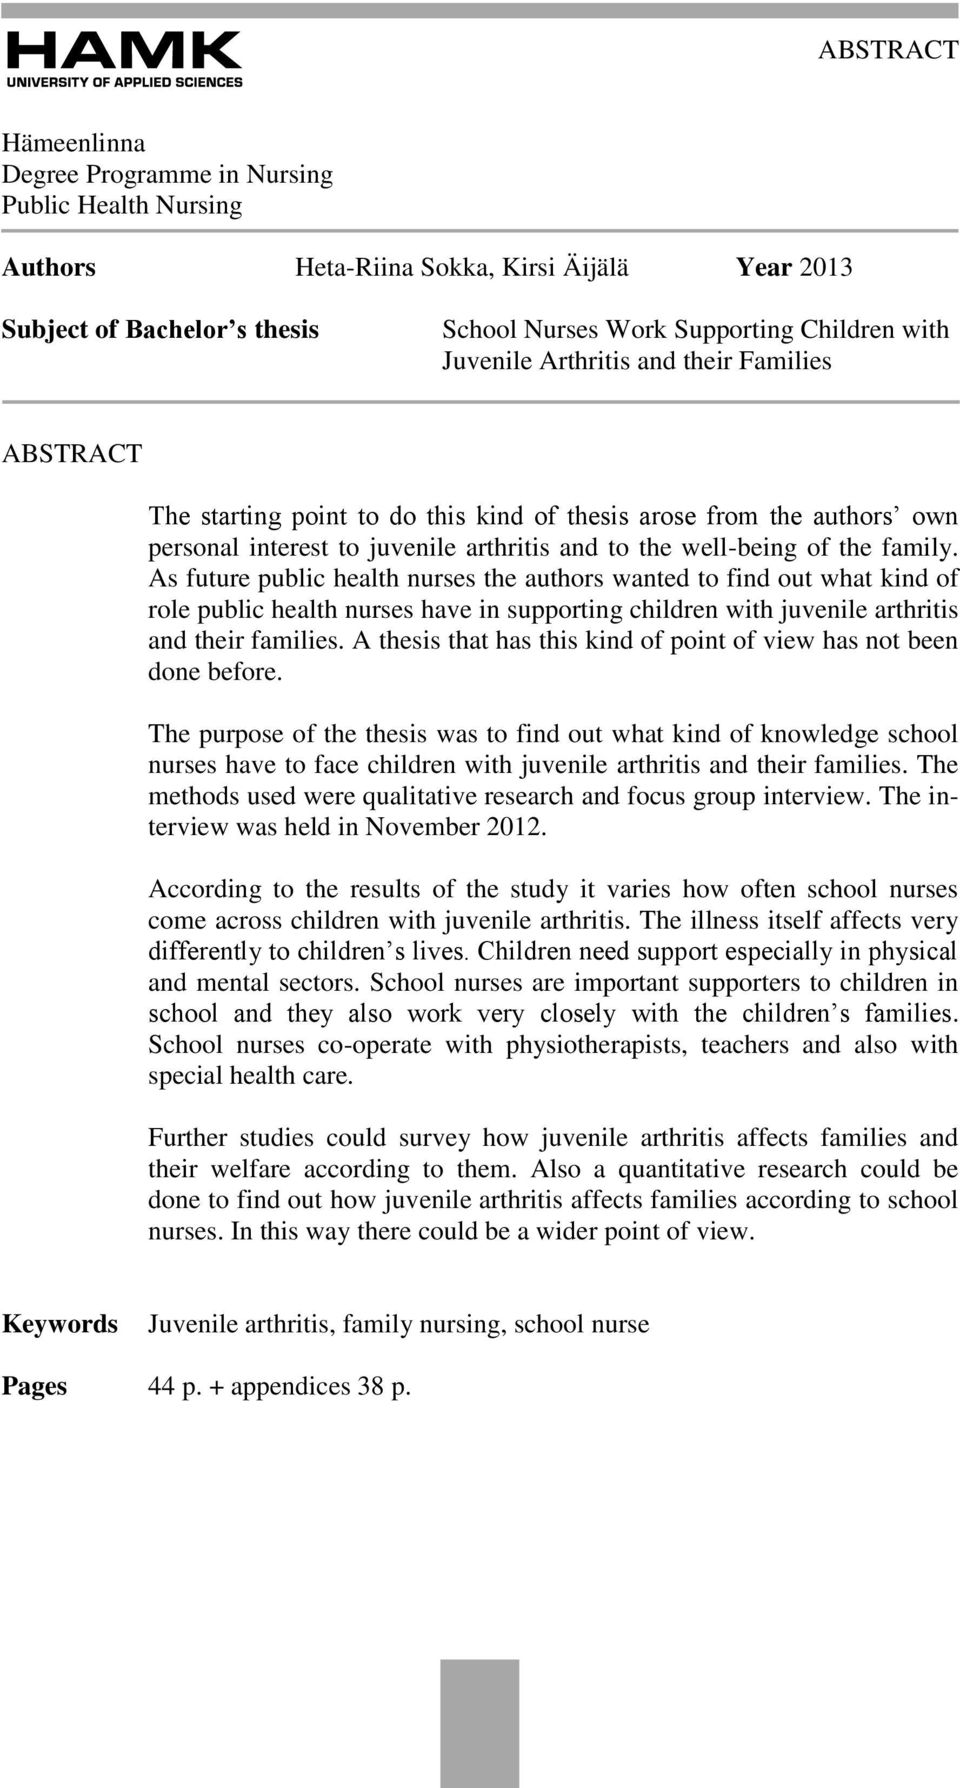 As future public health nurses the authors wanted to find out what kind of role public health nurses have in supporting children with juvenile arthritis and their families.